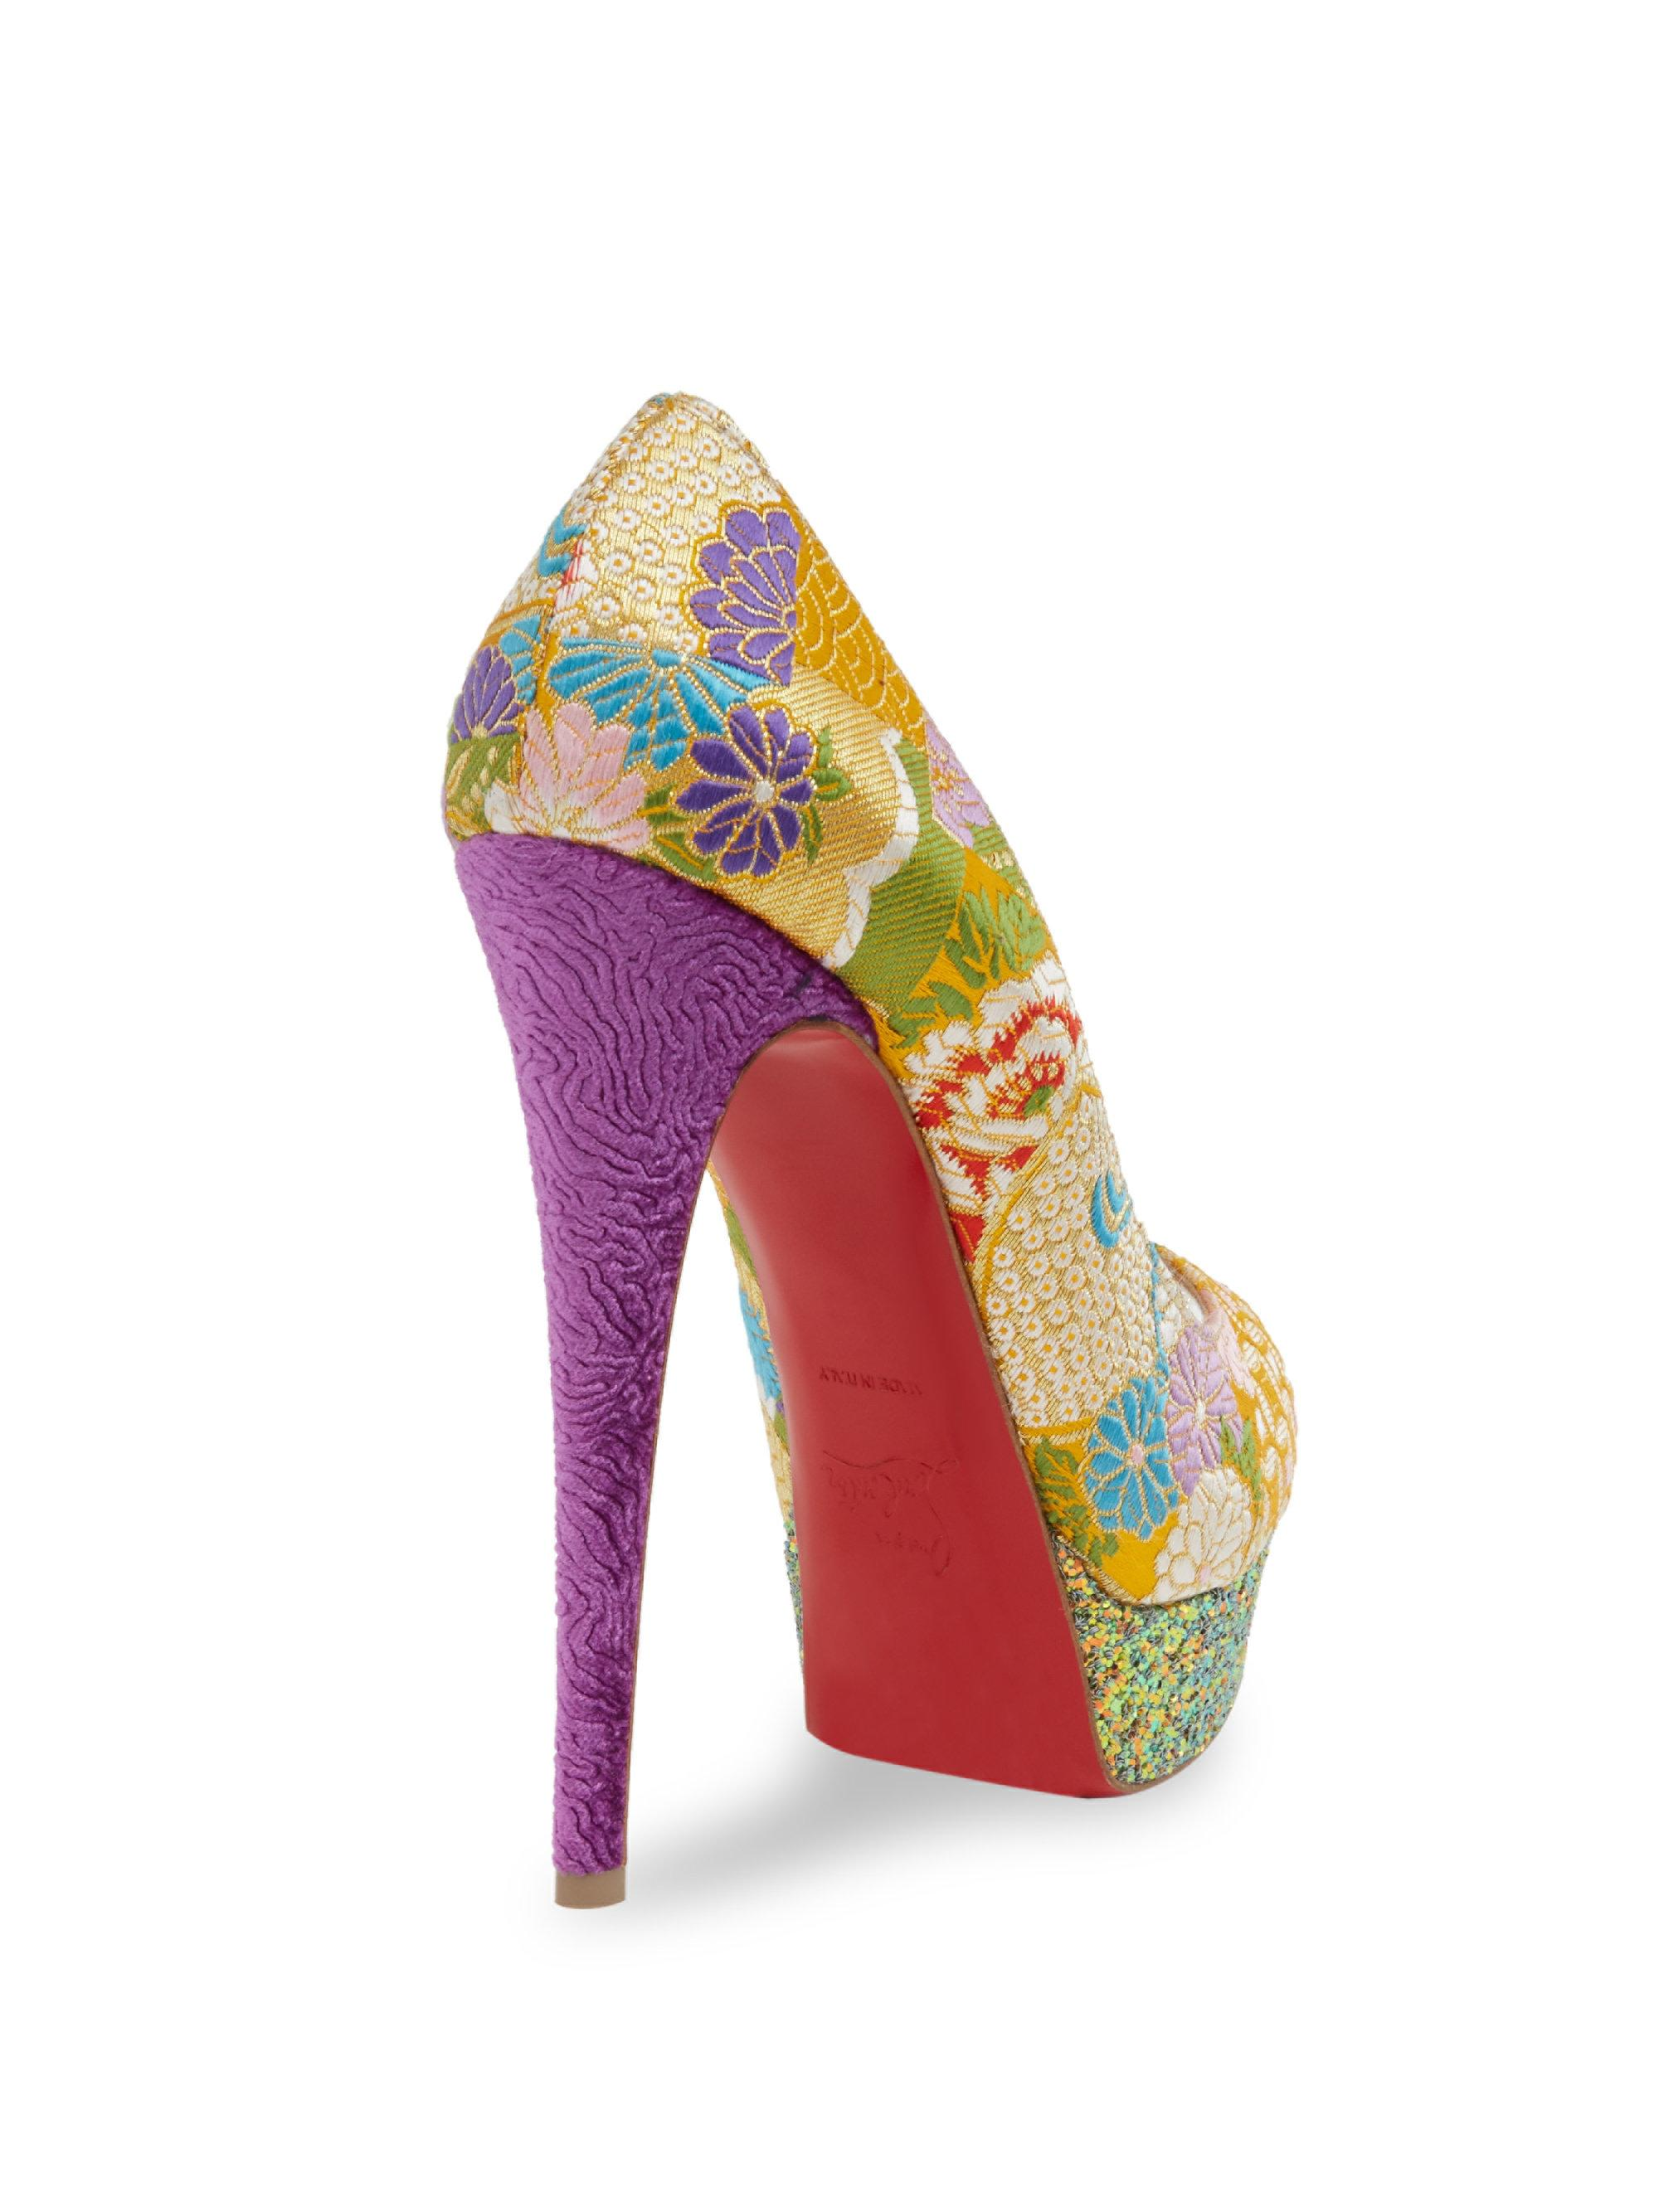 fb6f3b99190 Lyst - Christian Louboutin Classique Lady Peep 150 Floral   Glitter ...